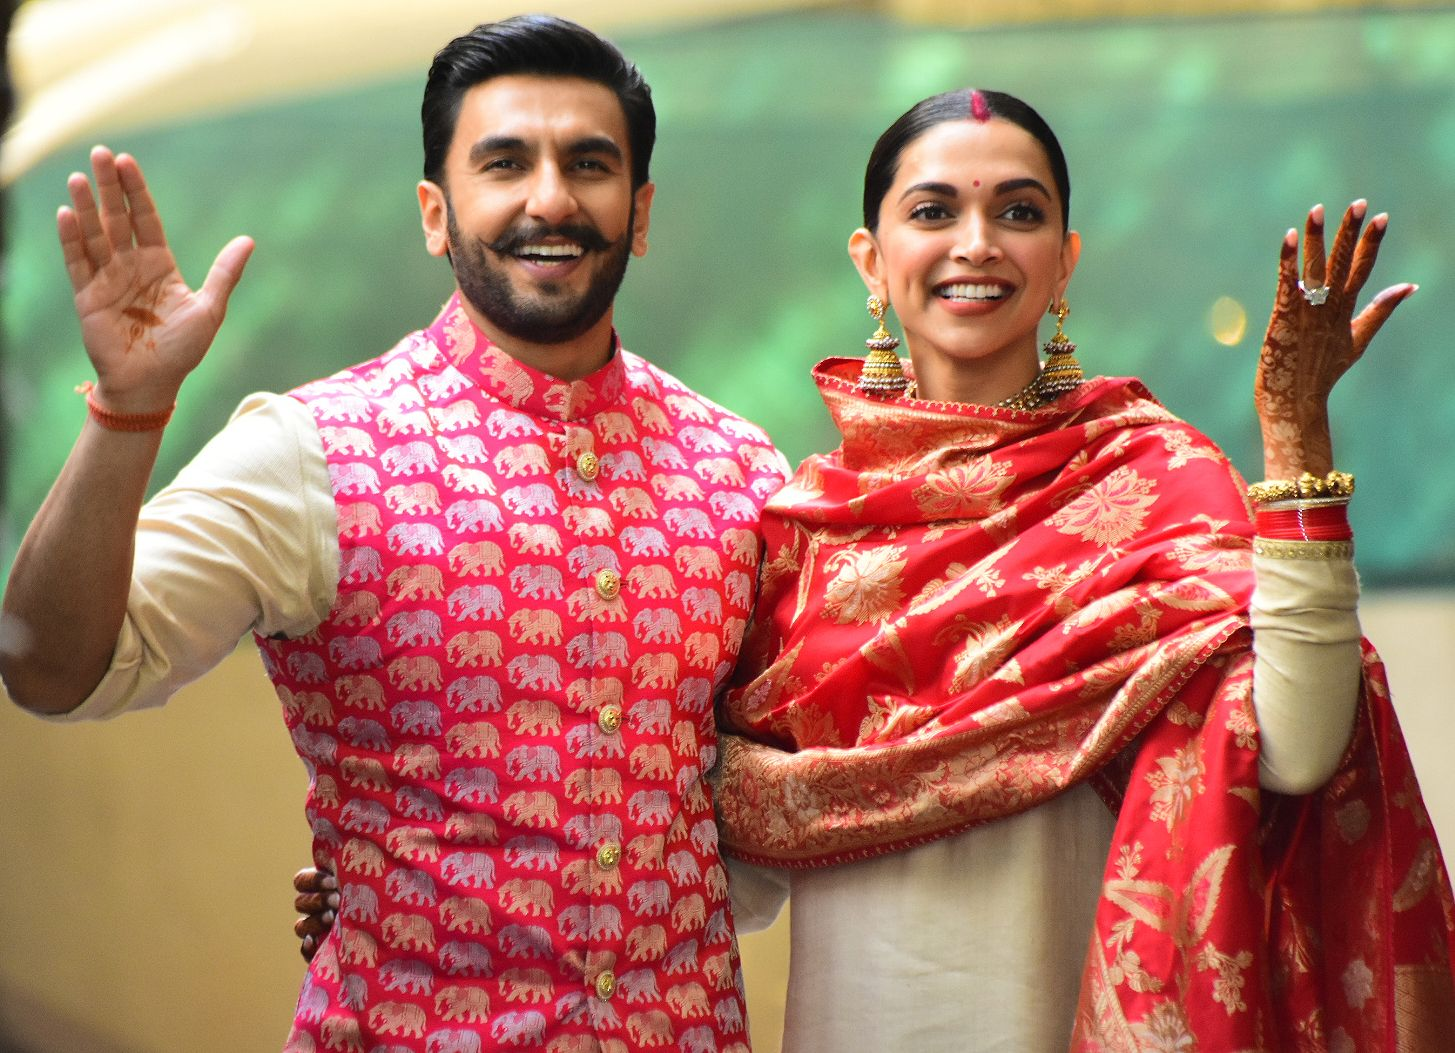 Check Out New Pics From Ranveer Singh & Deepika Padukone's Grand Wedding In Italy